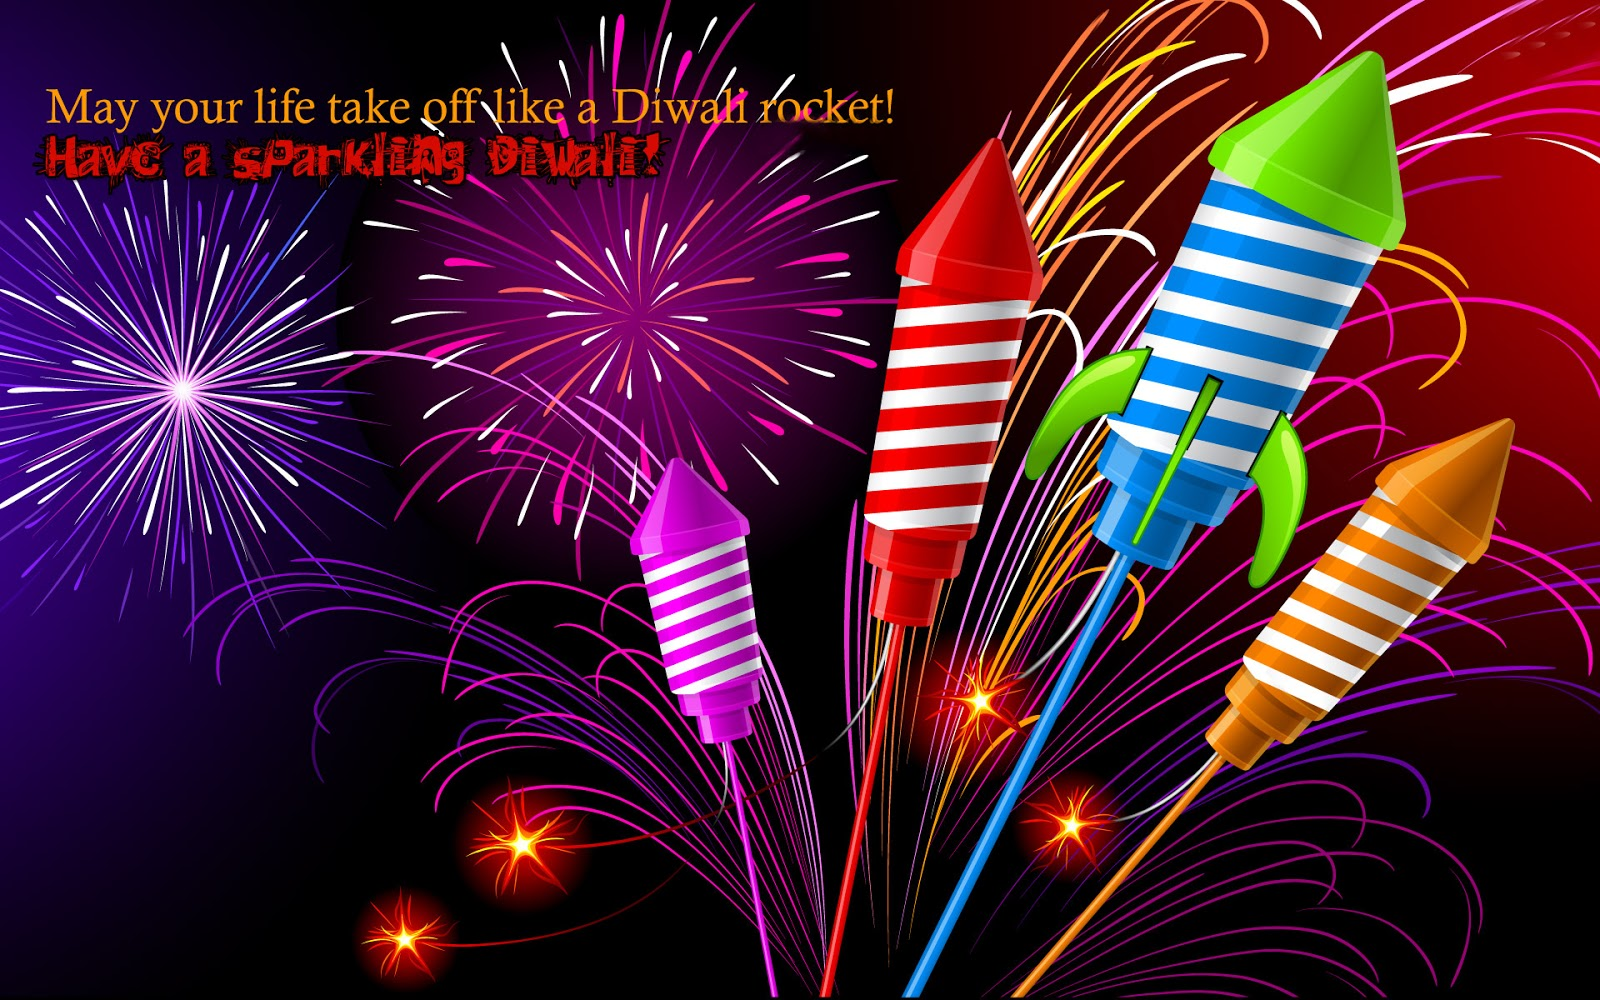 Happy diwali 2013 happy diwali fireworks and crackers hd - Hd wallpaper happy diwali ...